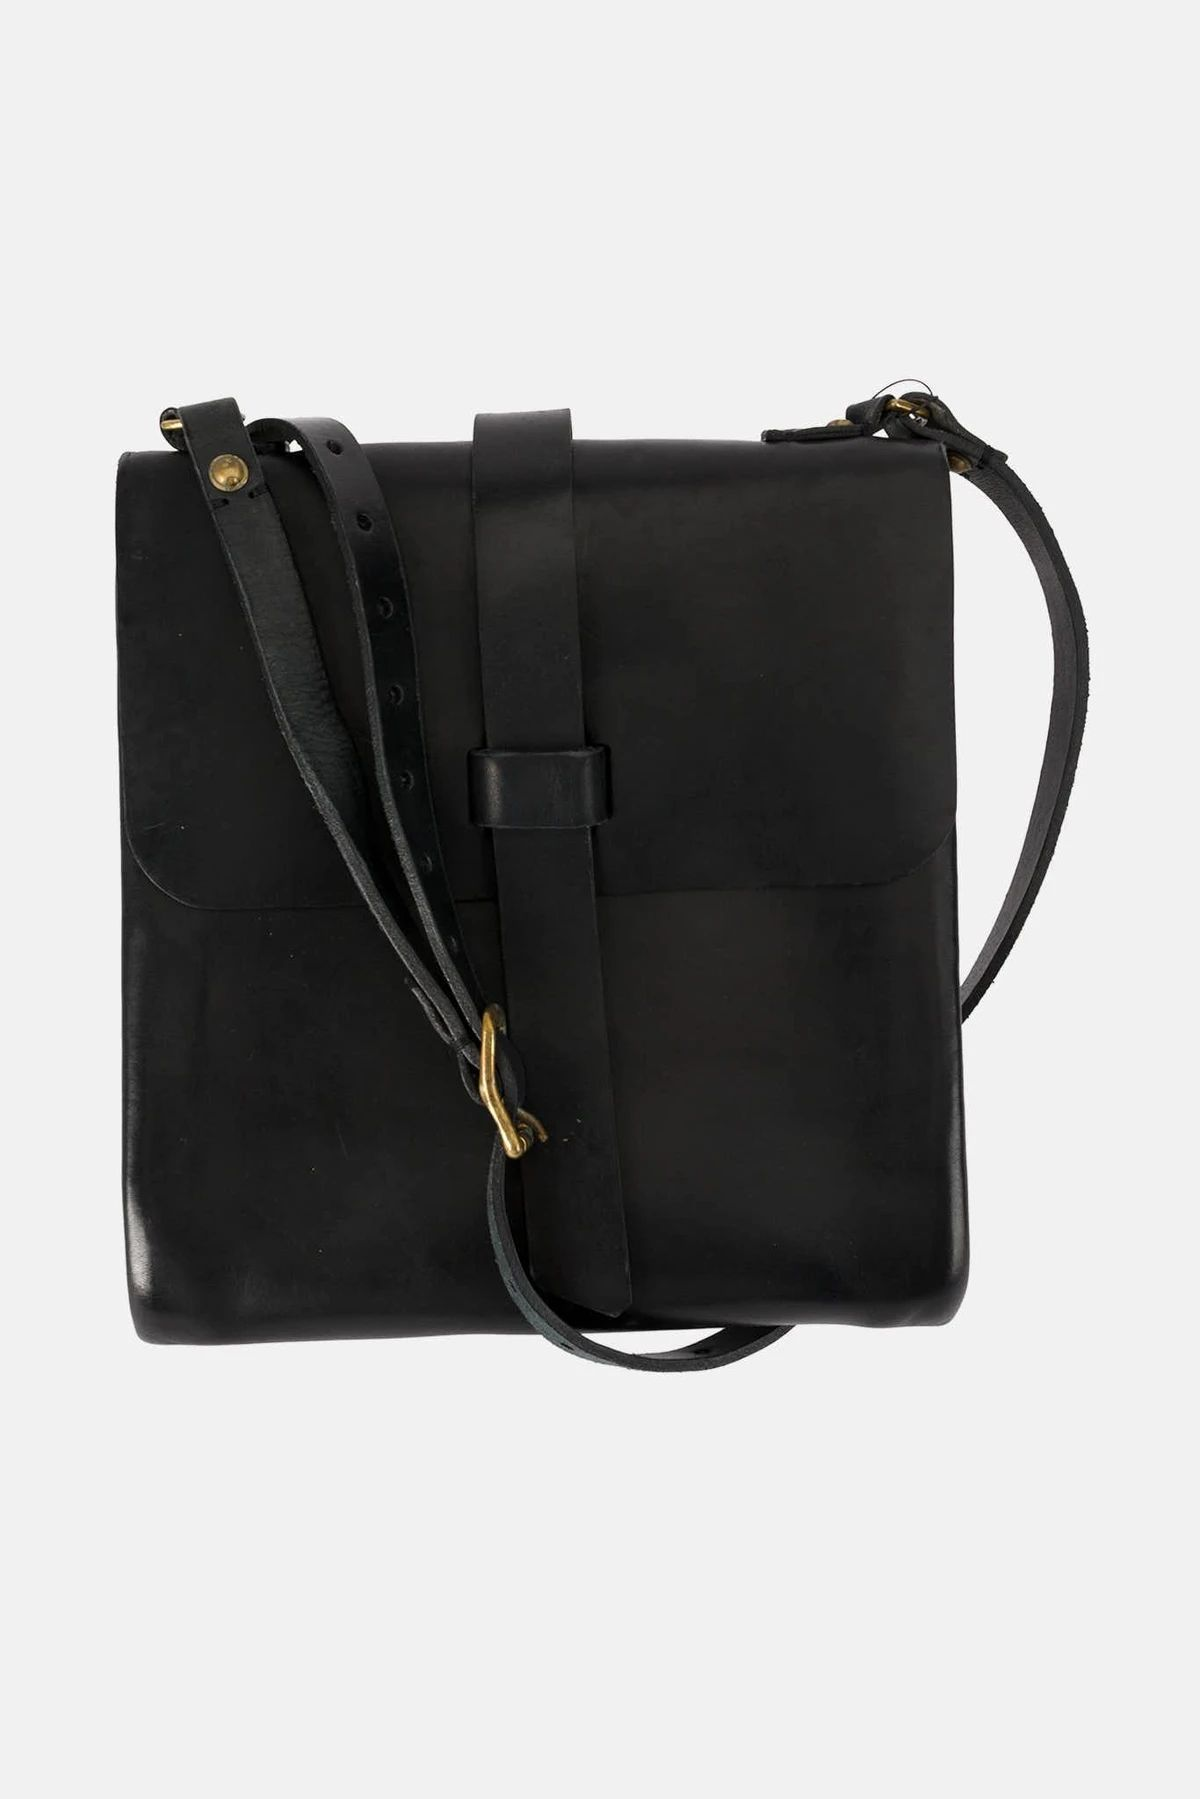 shop esde bags